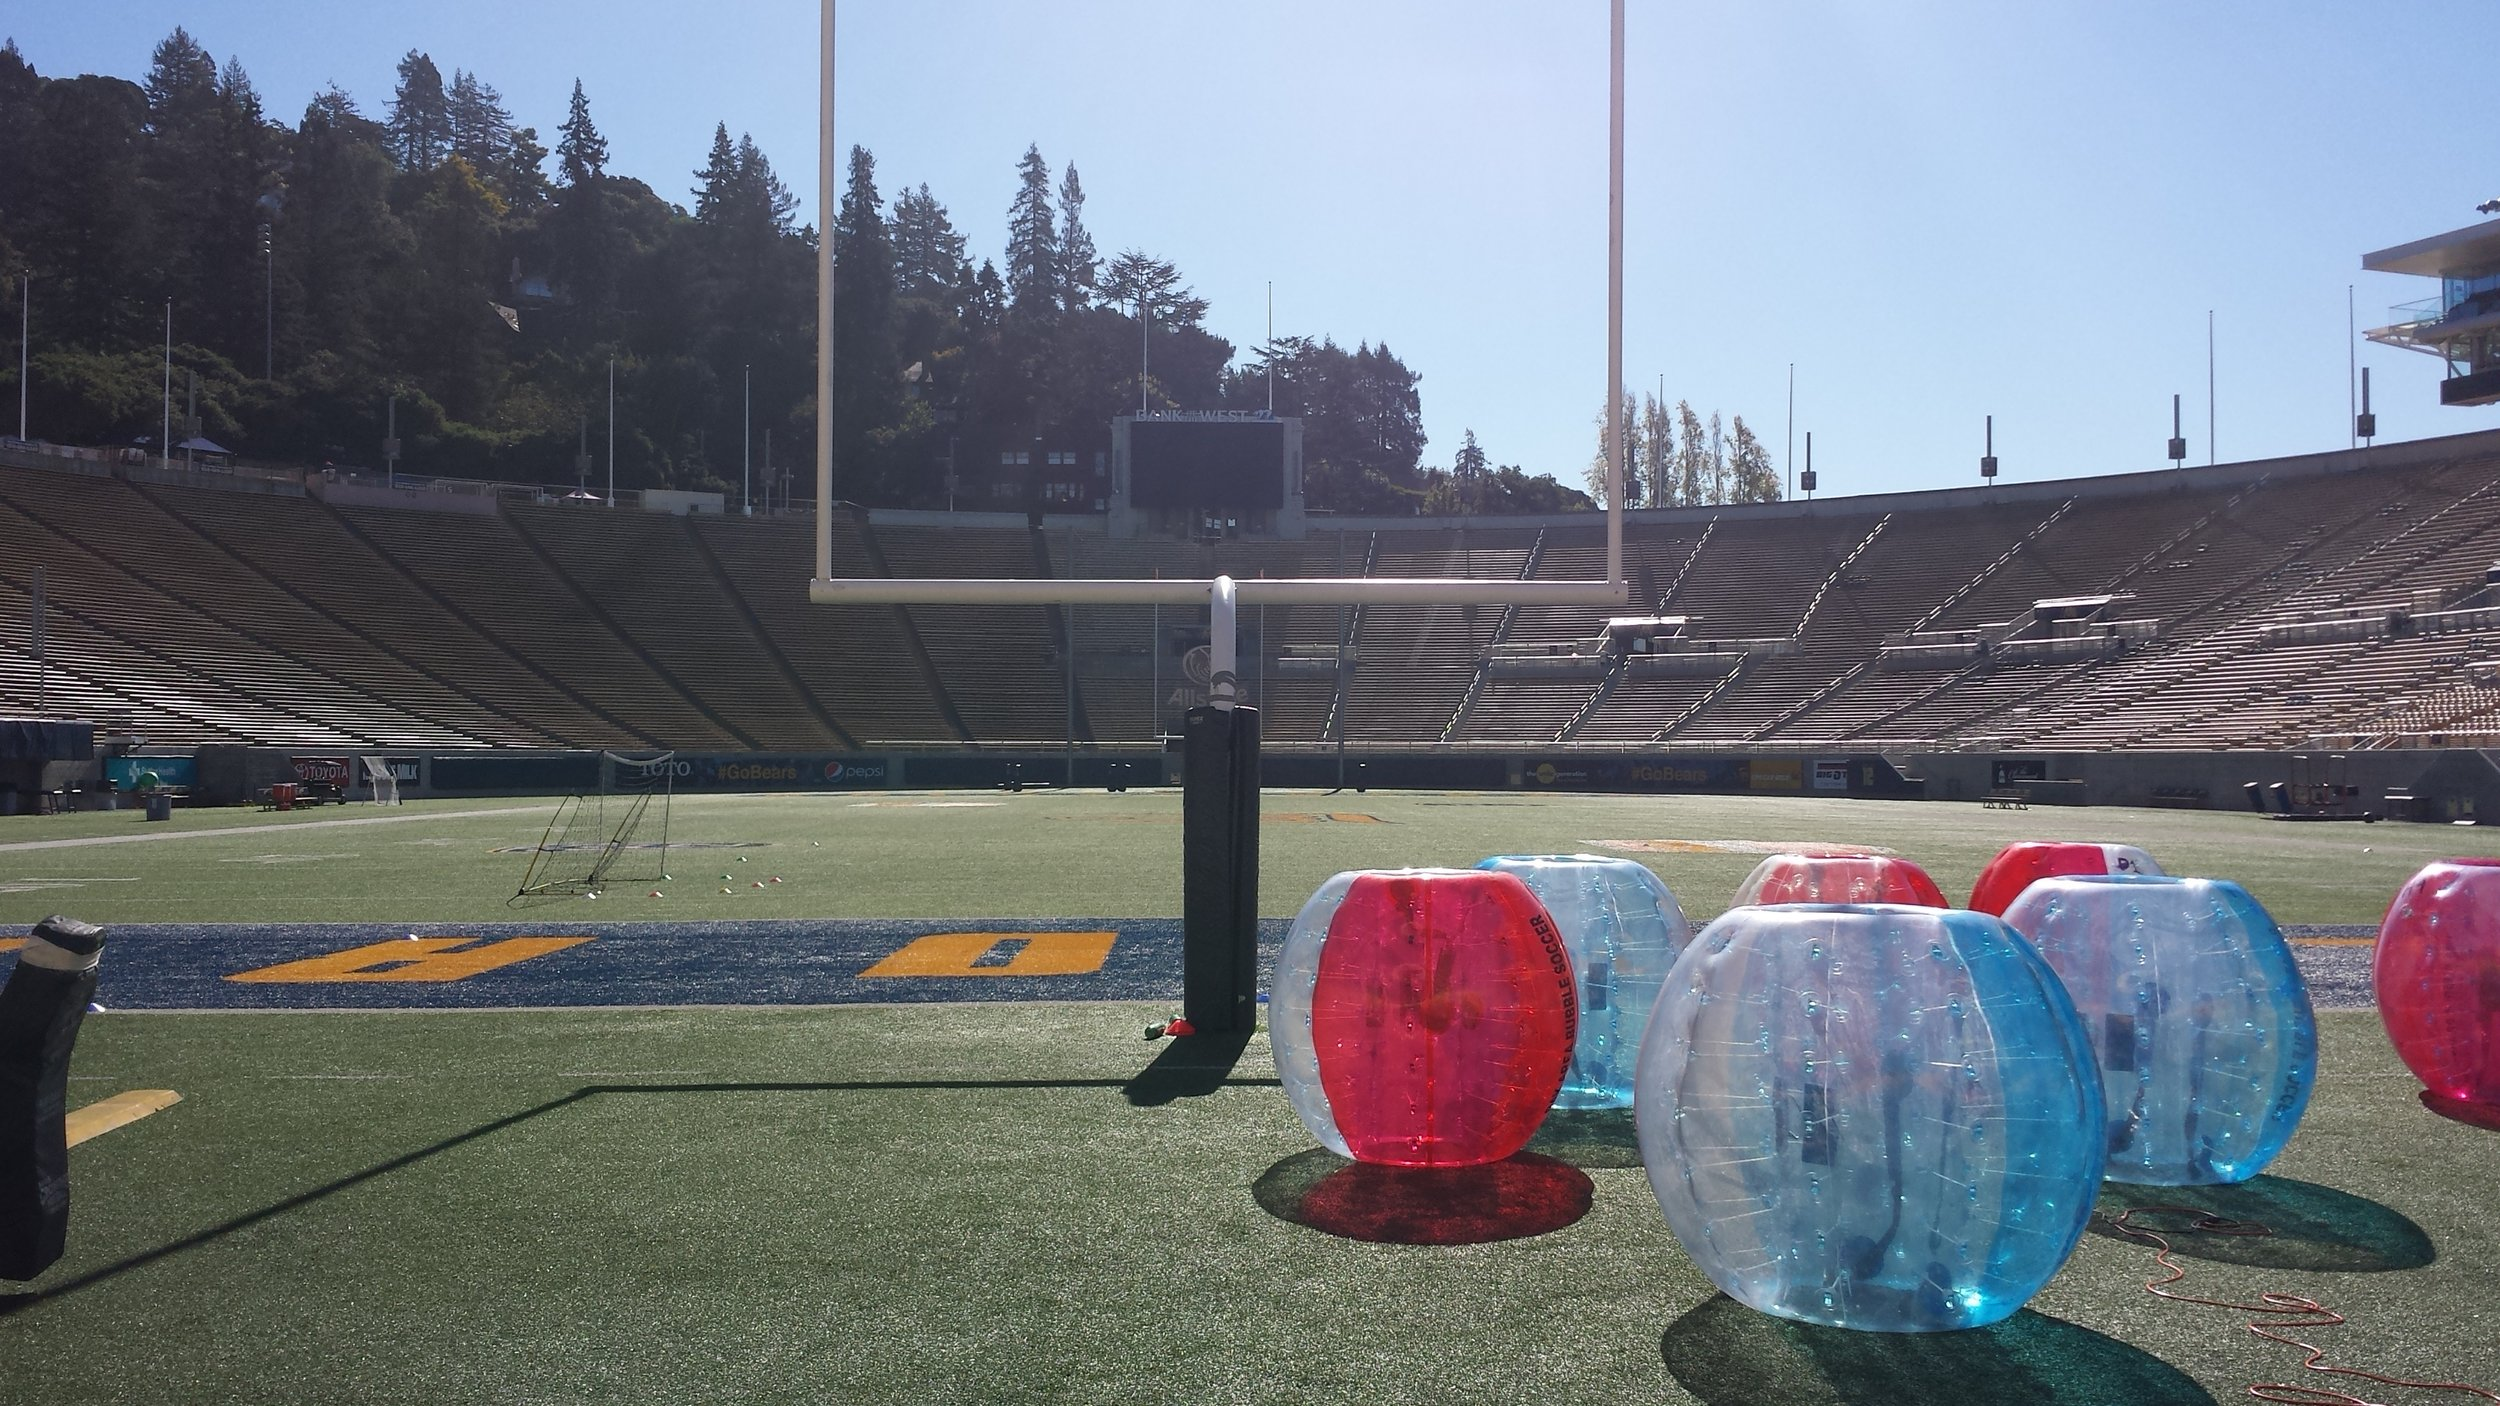 Stadium Bubble Soccer, can you play?